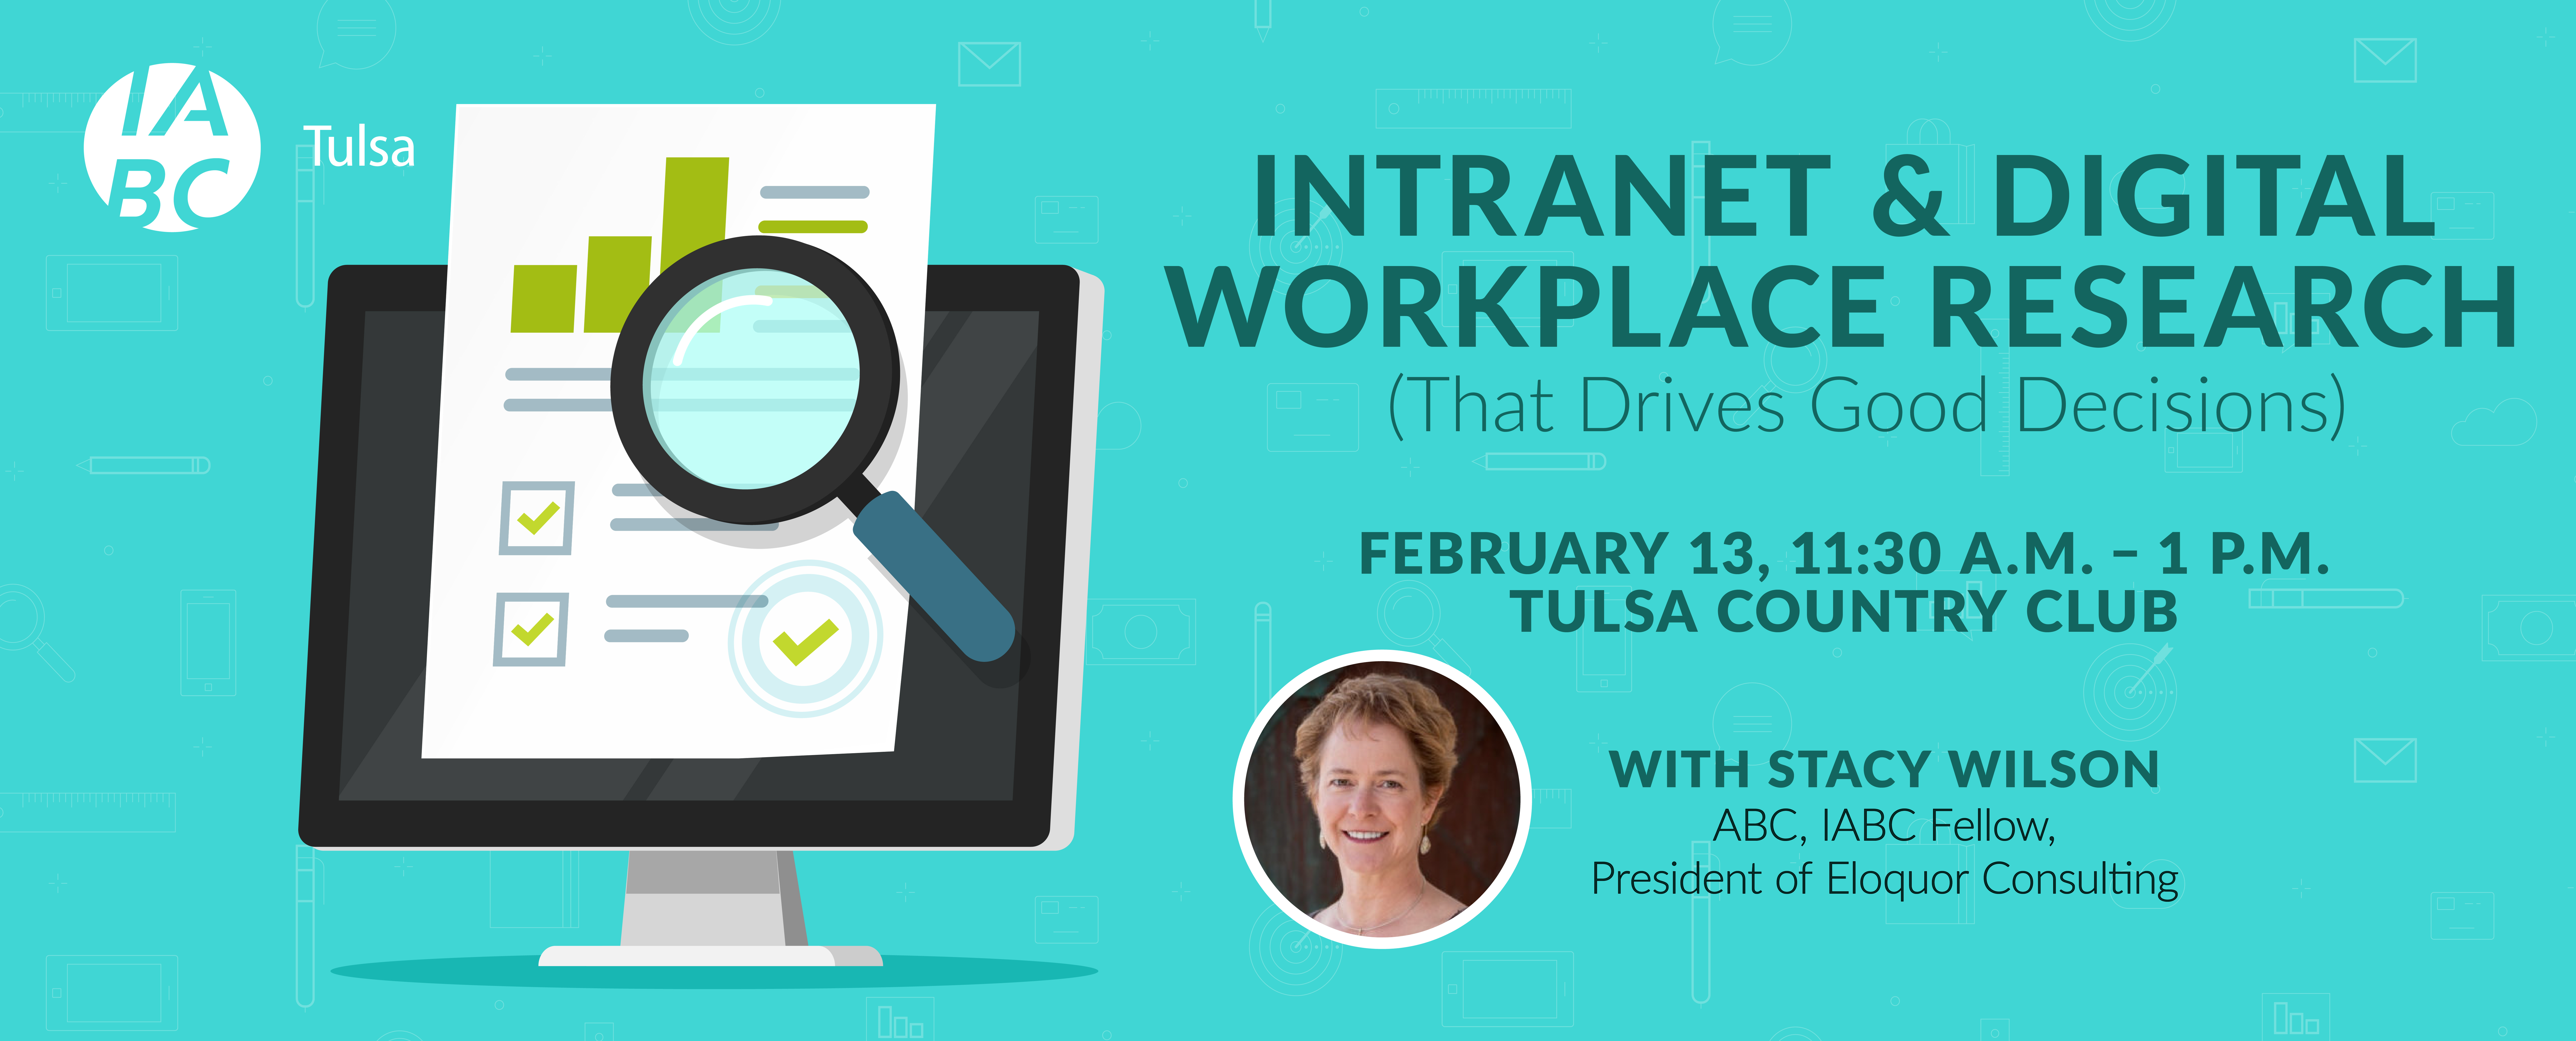 Intranet & Digital Workplace Research That Drives Good Decisions